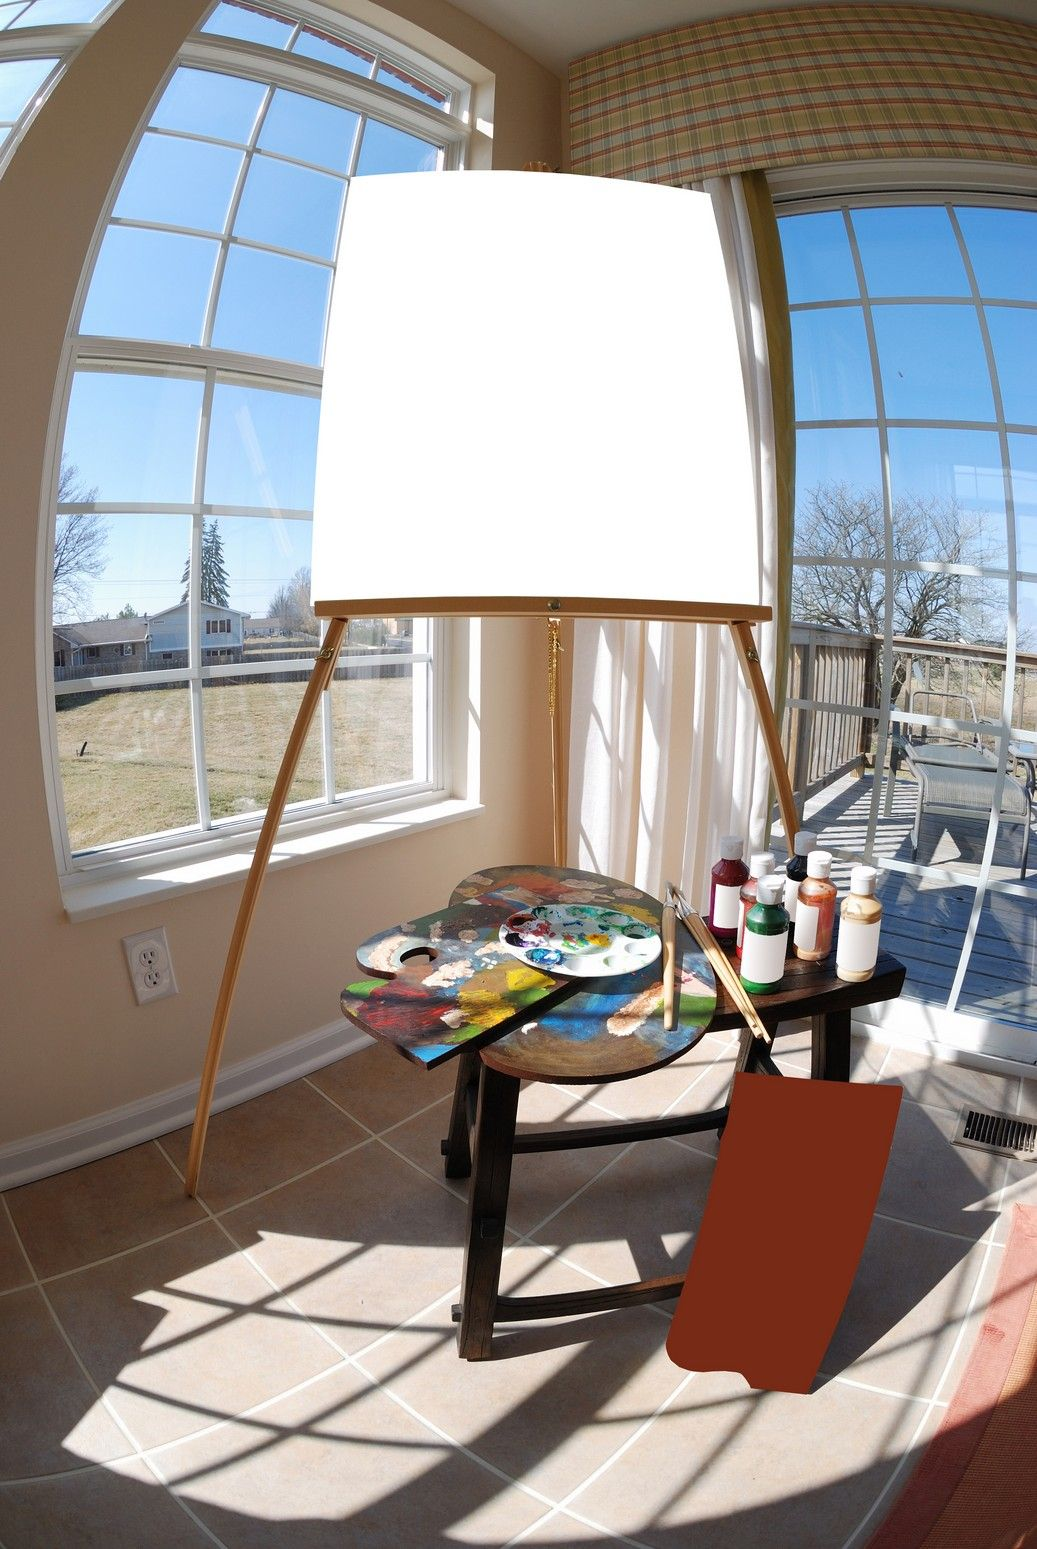 Inspirational sunroom for art projects